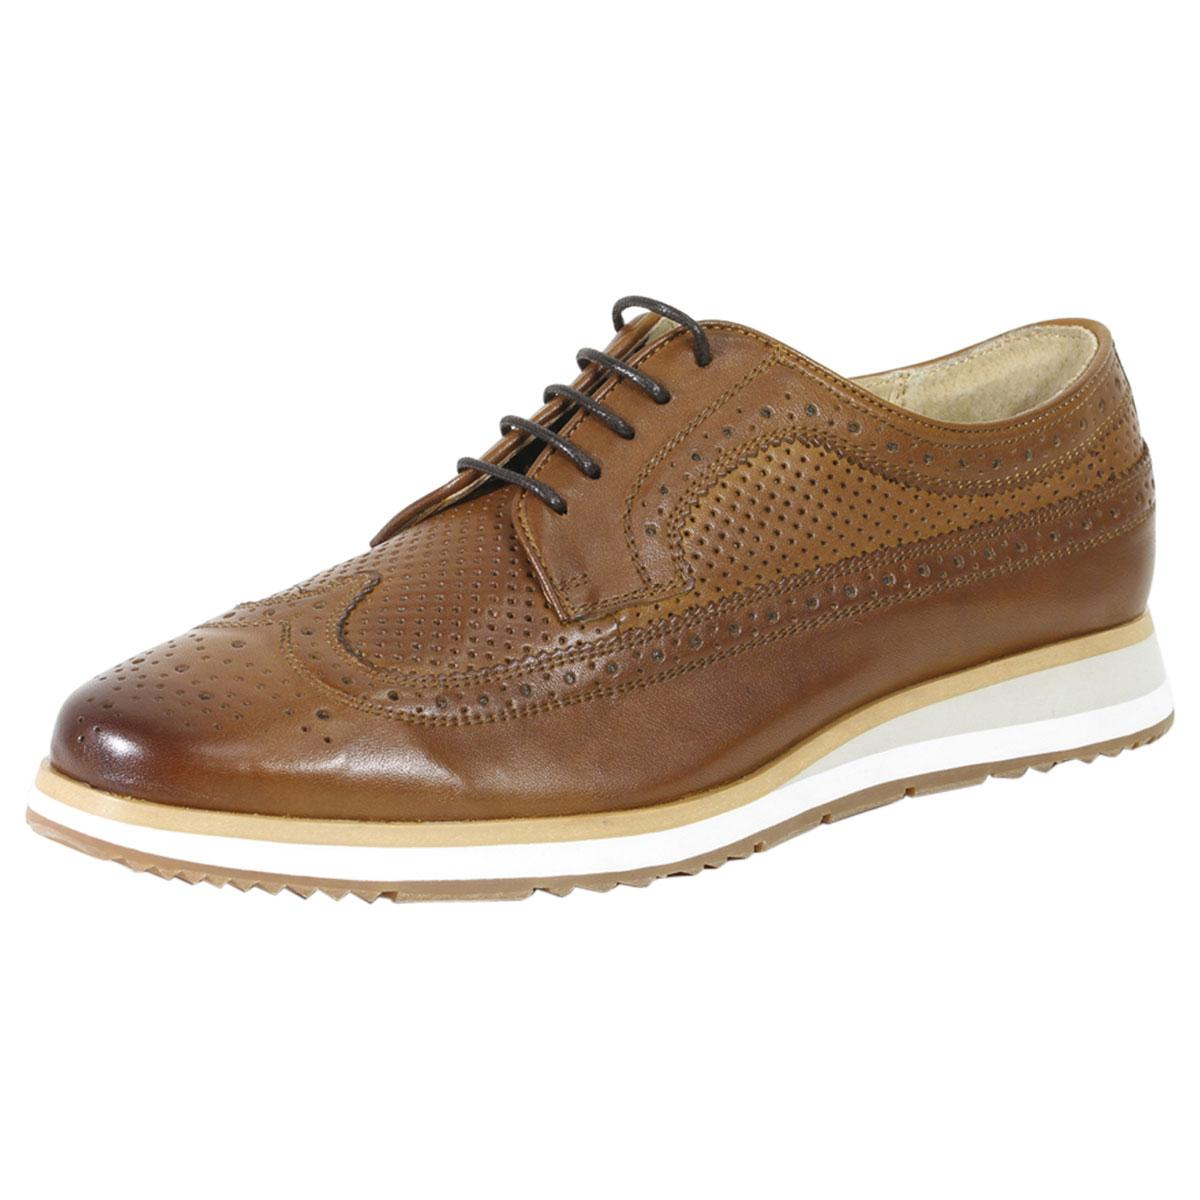 flux florsheim hommes chaussures aile oxfords chaussures hommes a43a11